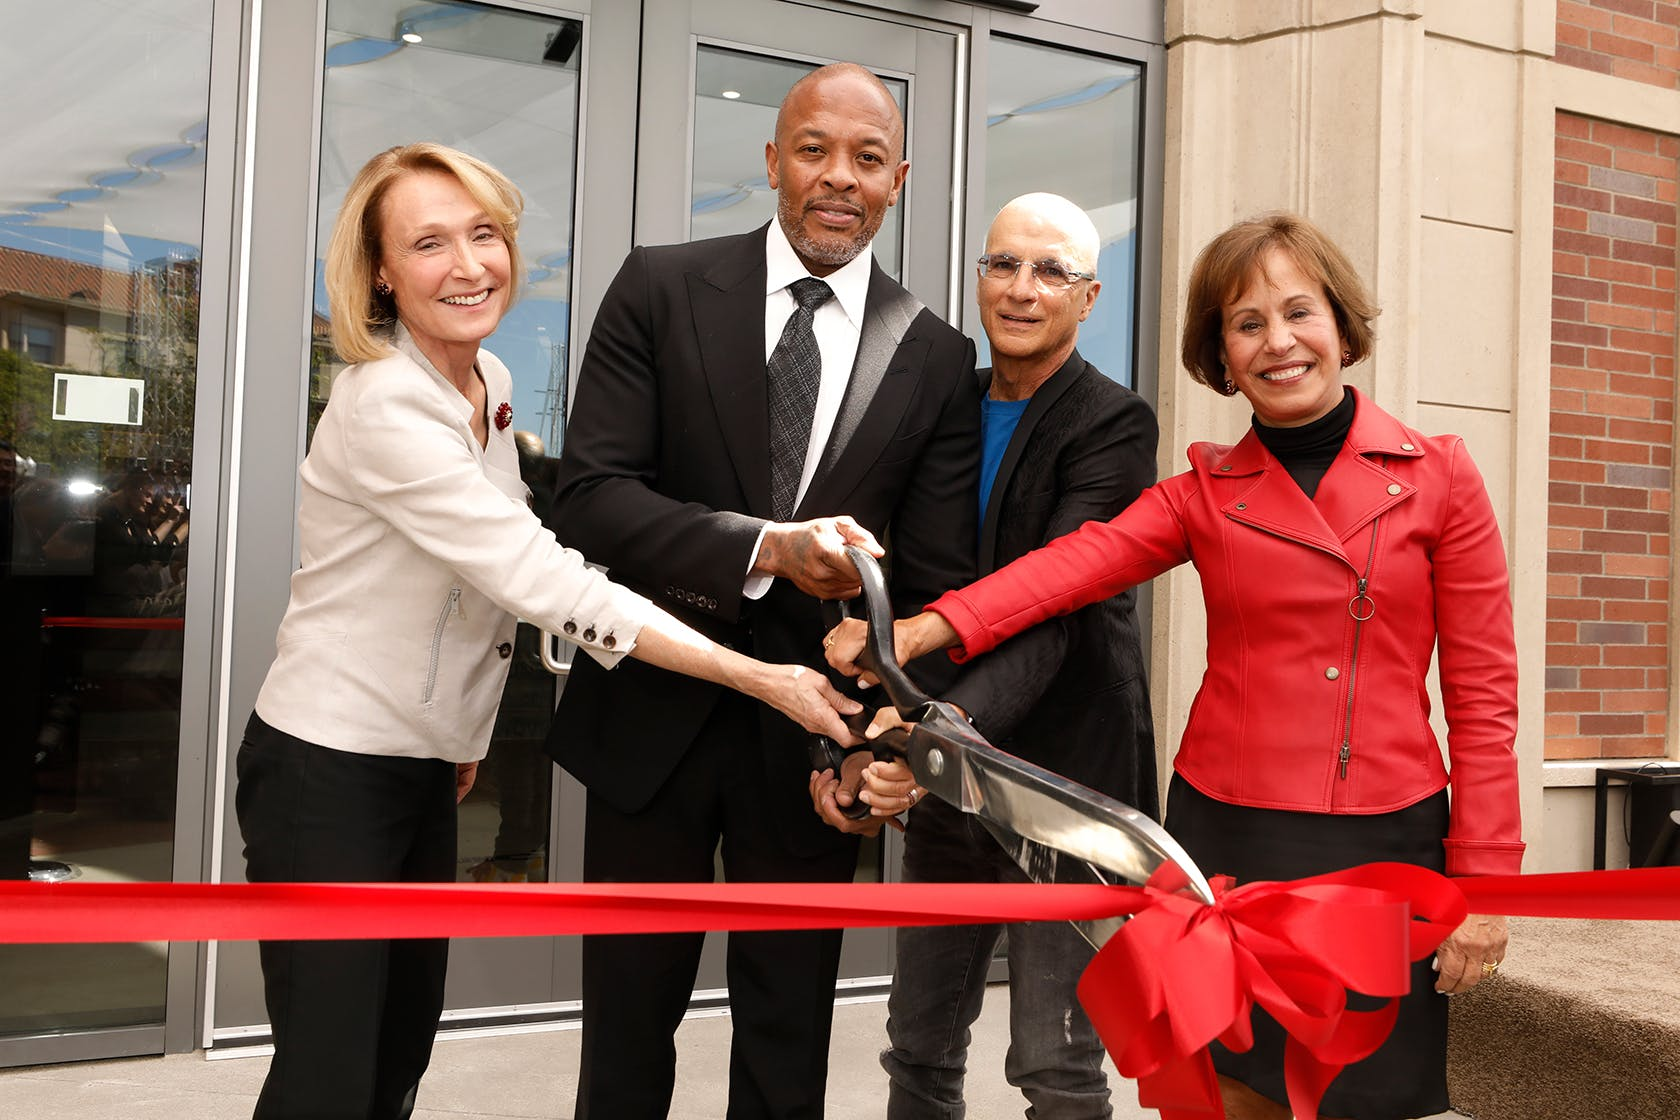 2 males and 2 females hold giant scissors poised to cut giant red ribbon